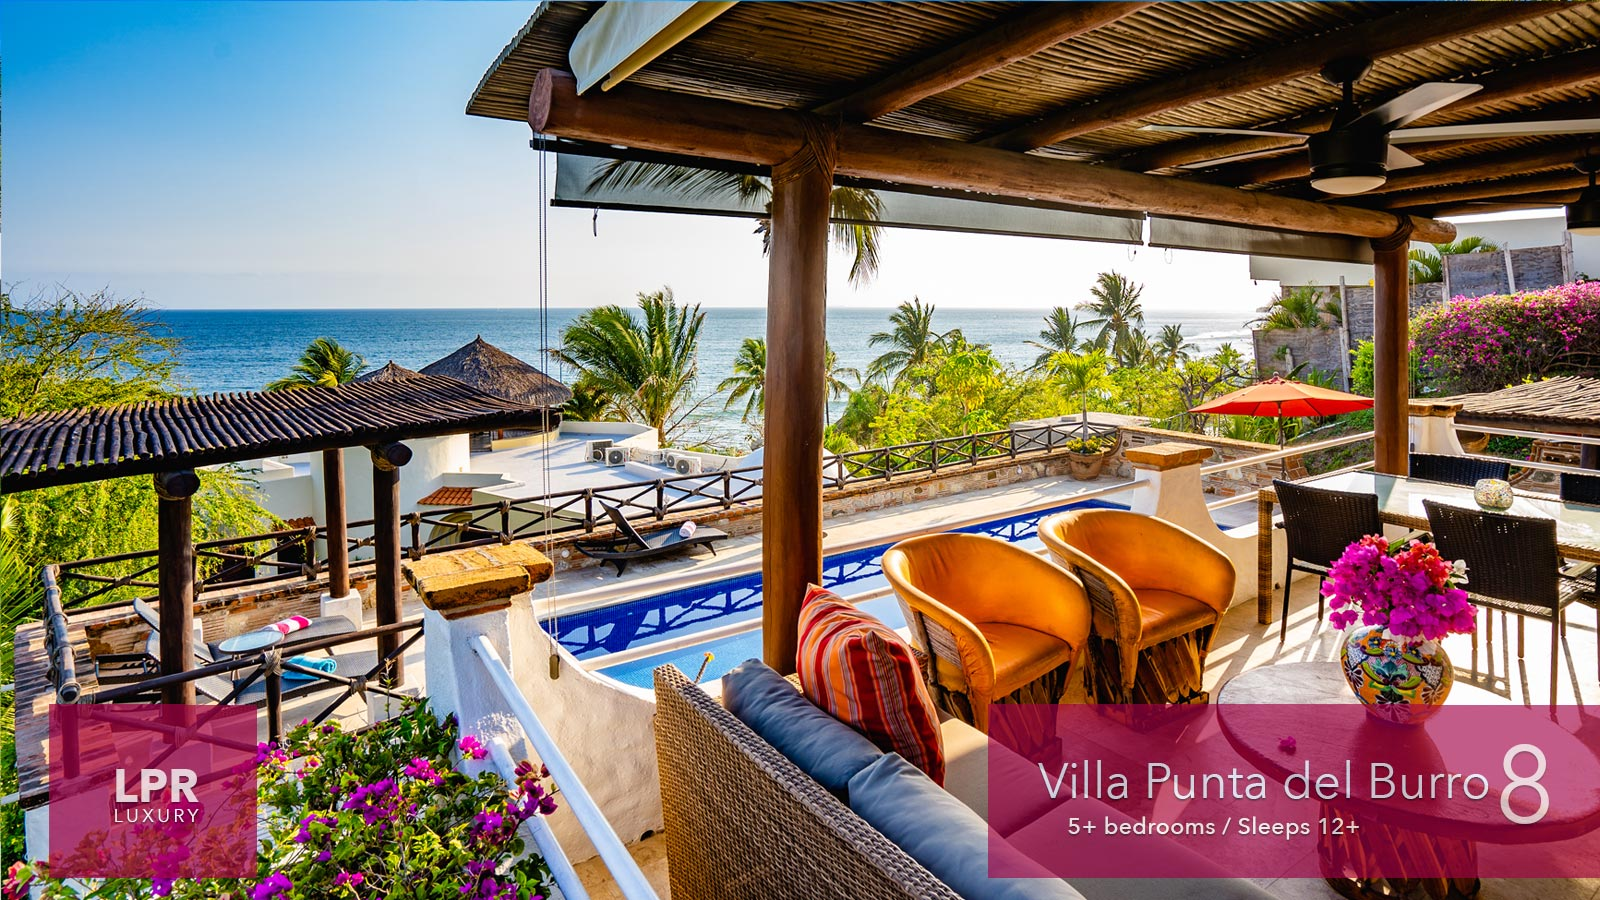 Villa Punta del Burro 8 - Punta de Mita beachfront vacation vila for sale North of Puerto Vallarta, Riviera Nayarit, Mexico real estate